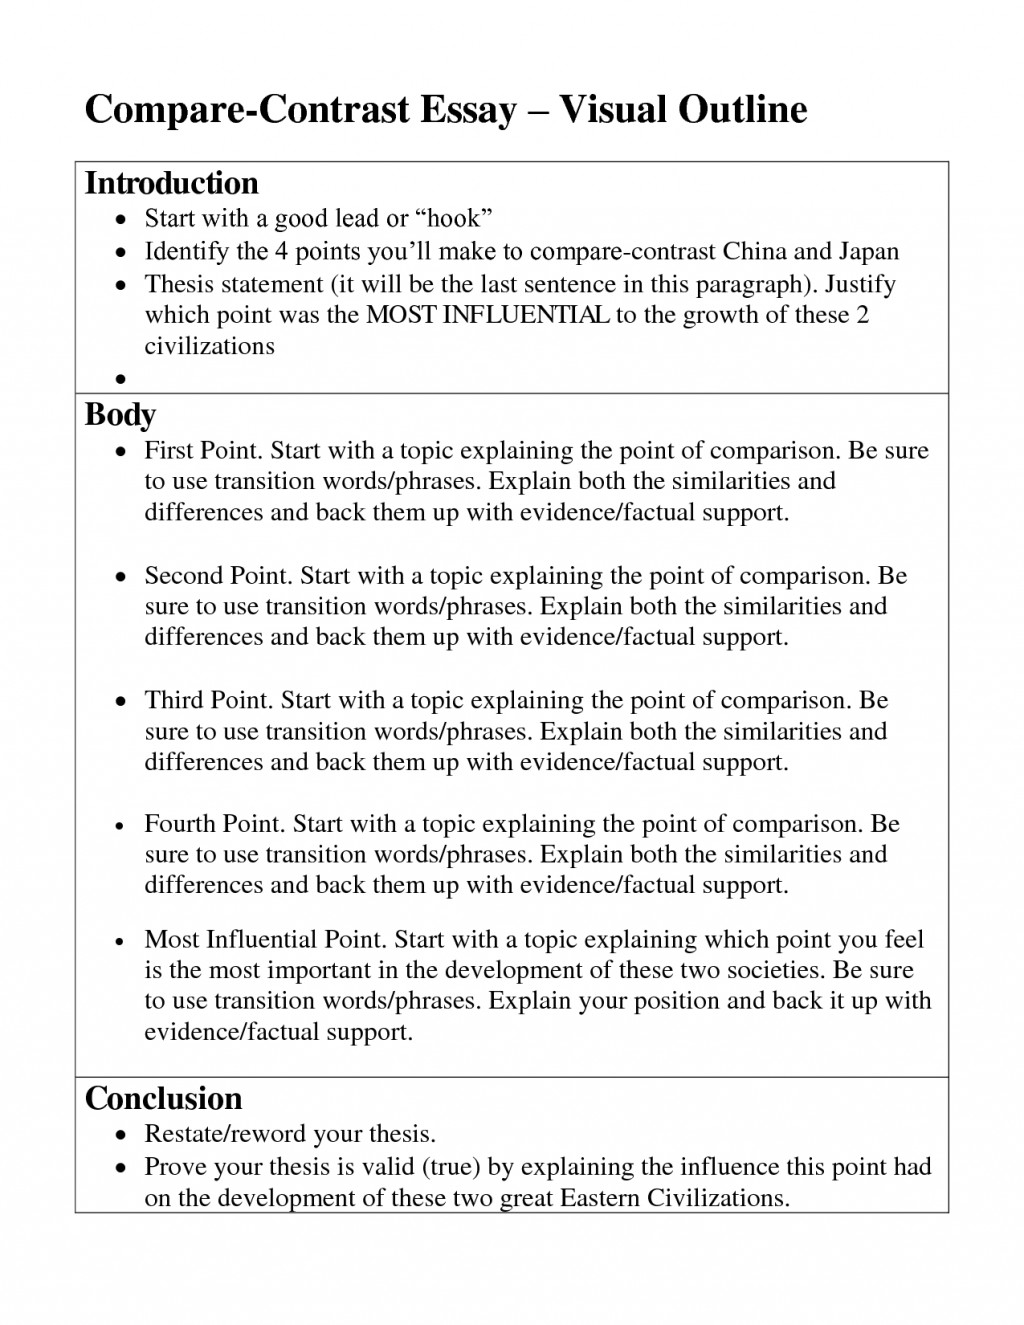 007 Compare And Contrast Essay Format Rare Writing 3rd Grade Sample High School Pdf Large